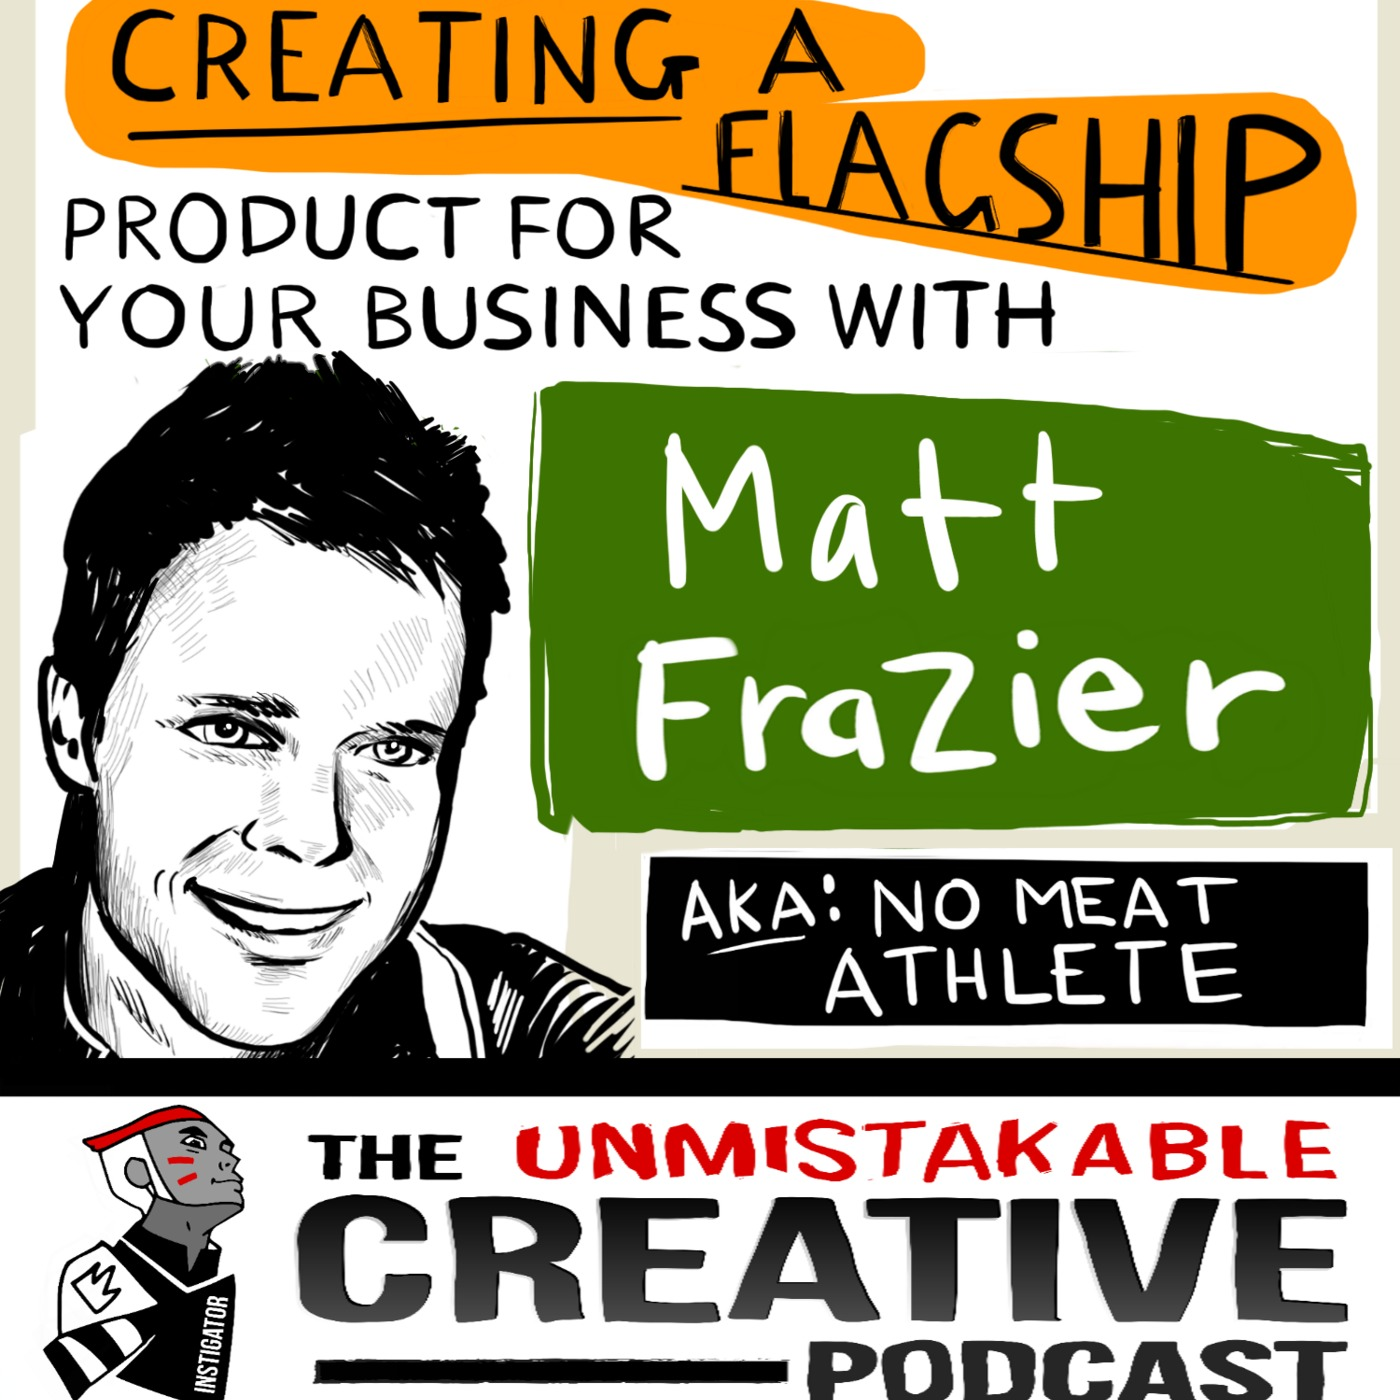 How to Create a Flagship Product for Your Brand with Matt Frazier